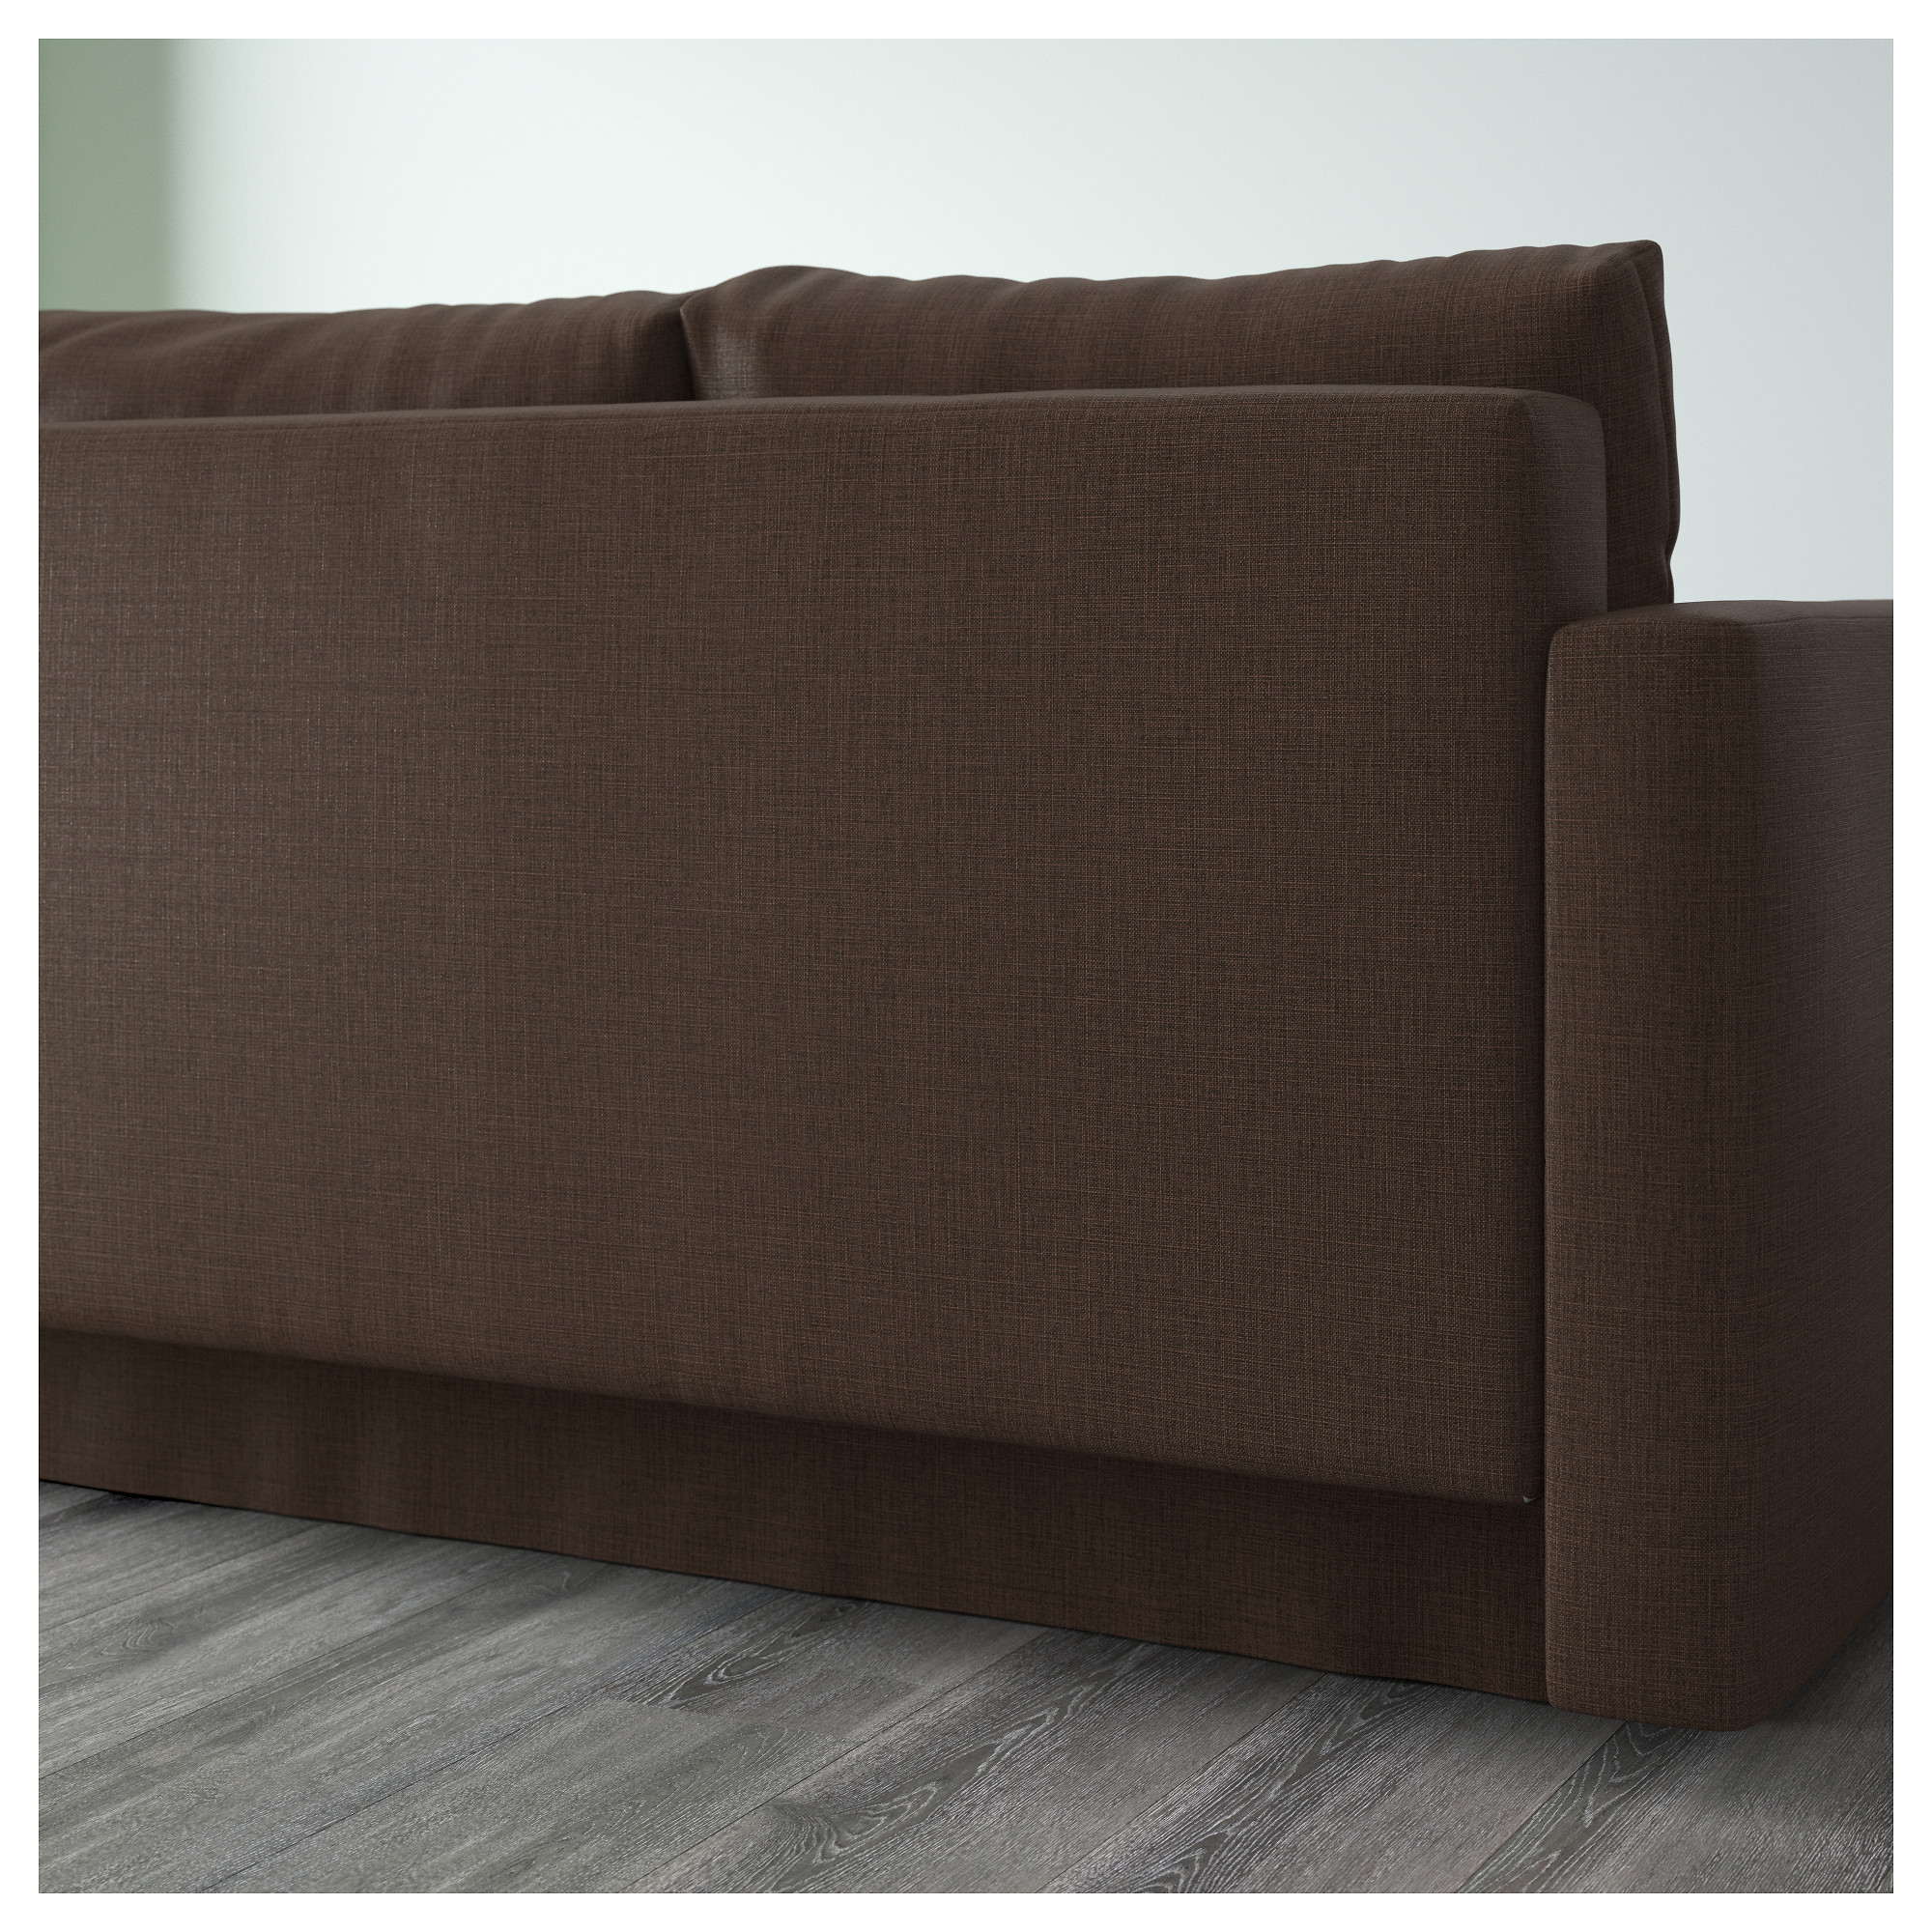 FRIHETEN Corner Sofa-bed With Storage - Skiftebo Beige - IKEA